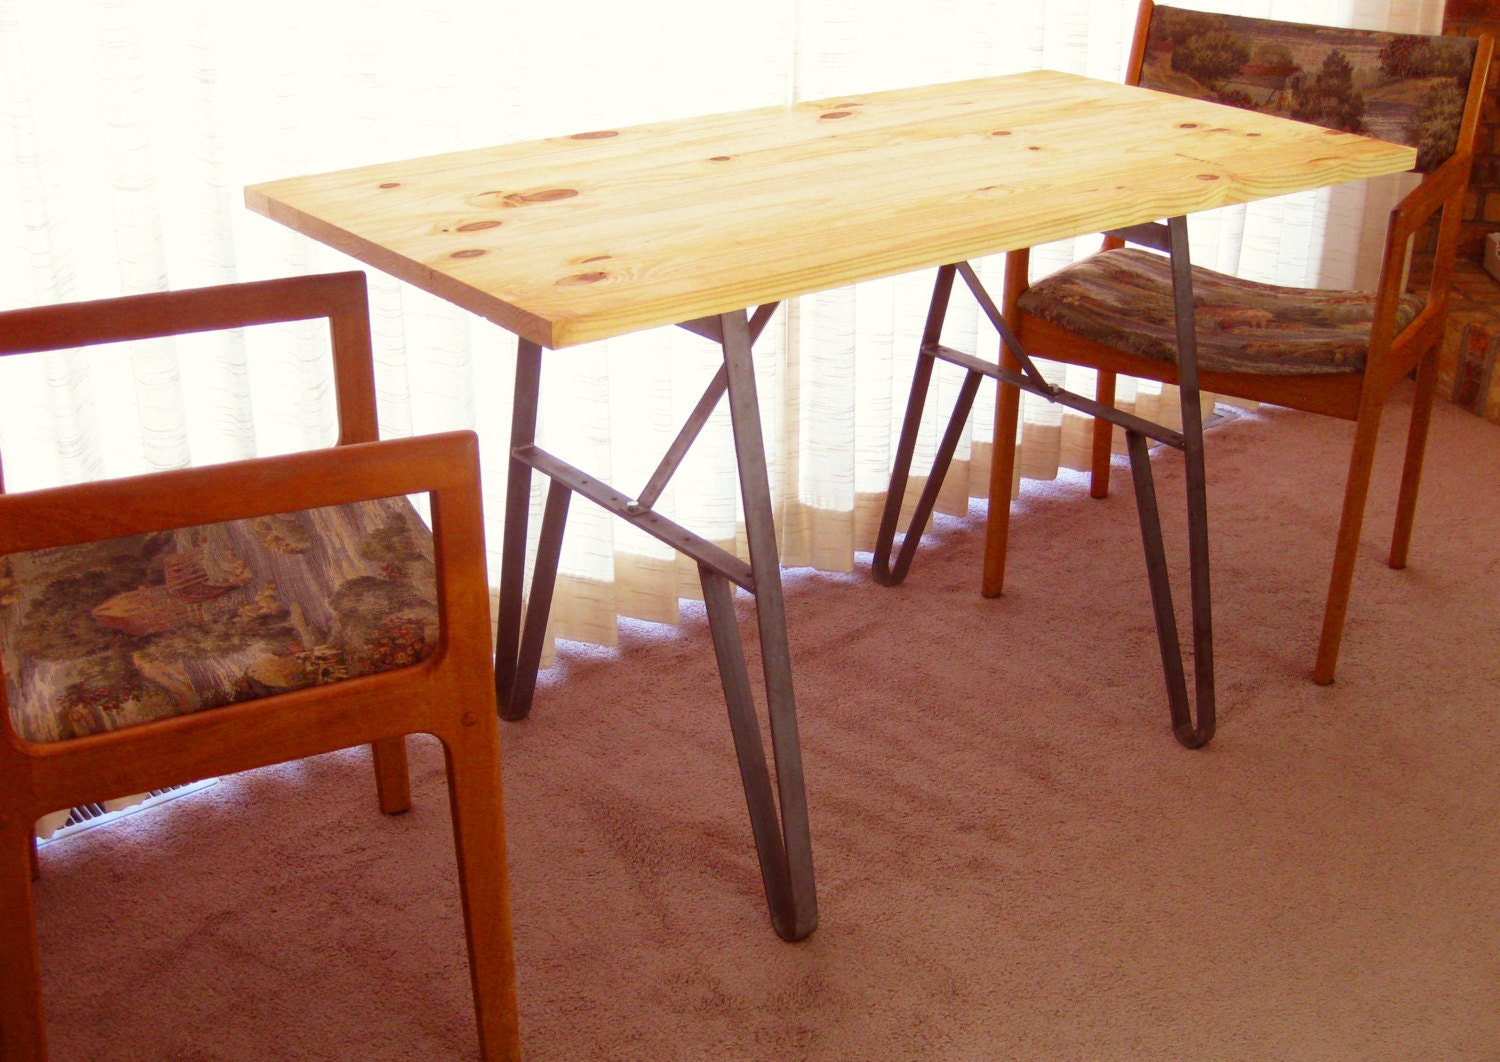 Small kitchen table desk metal legs 24 inch base inch - Kitchen table bases ...